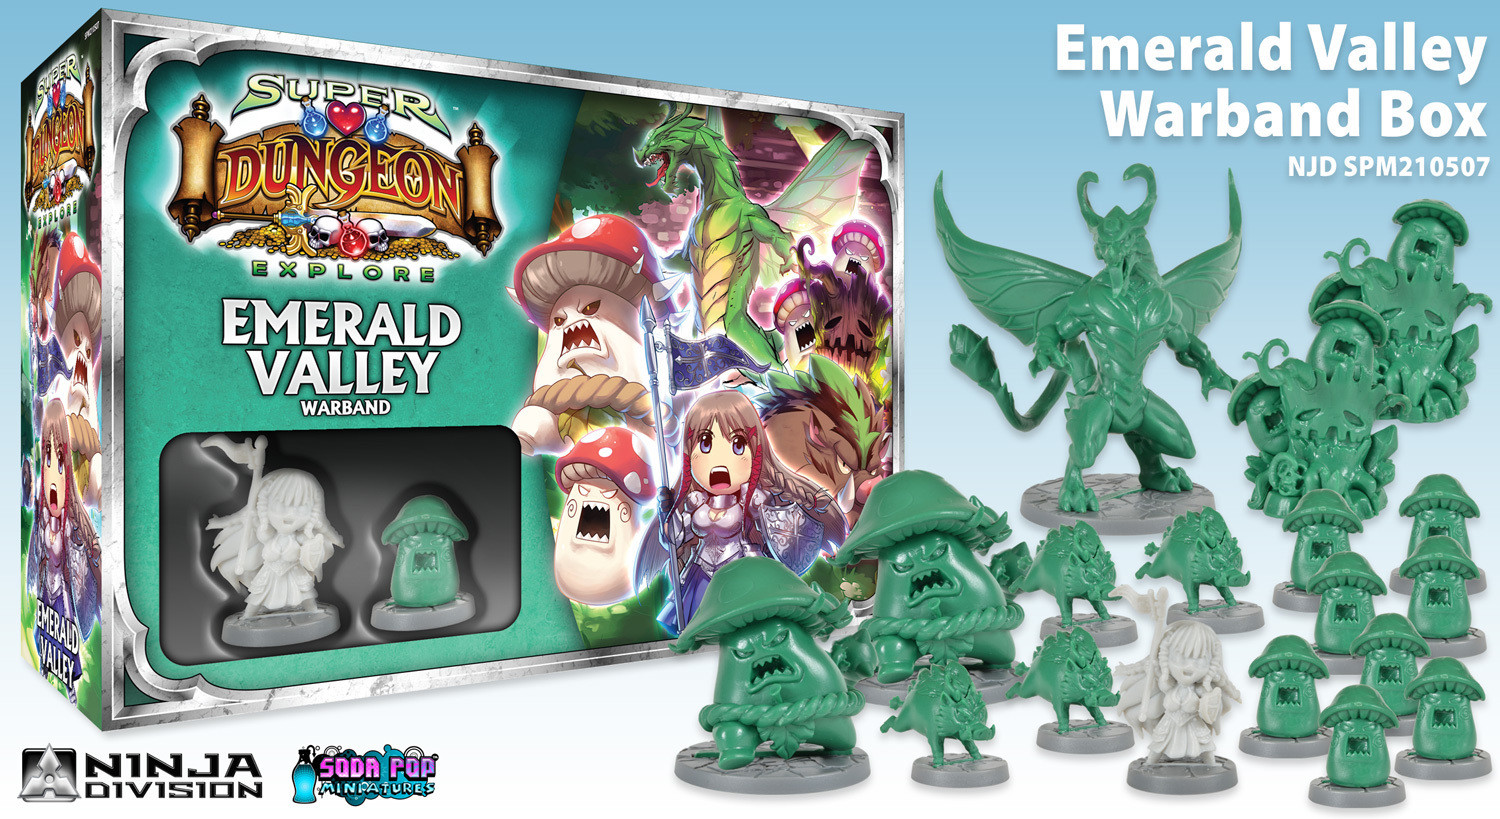 Emerald Valley Warband